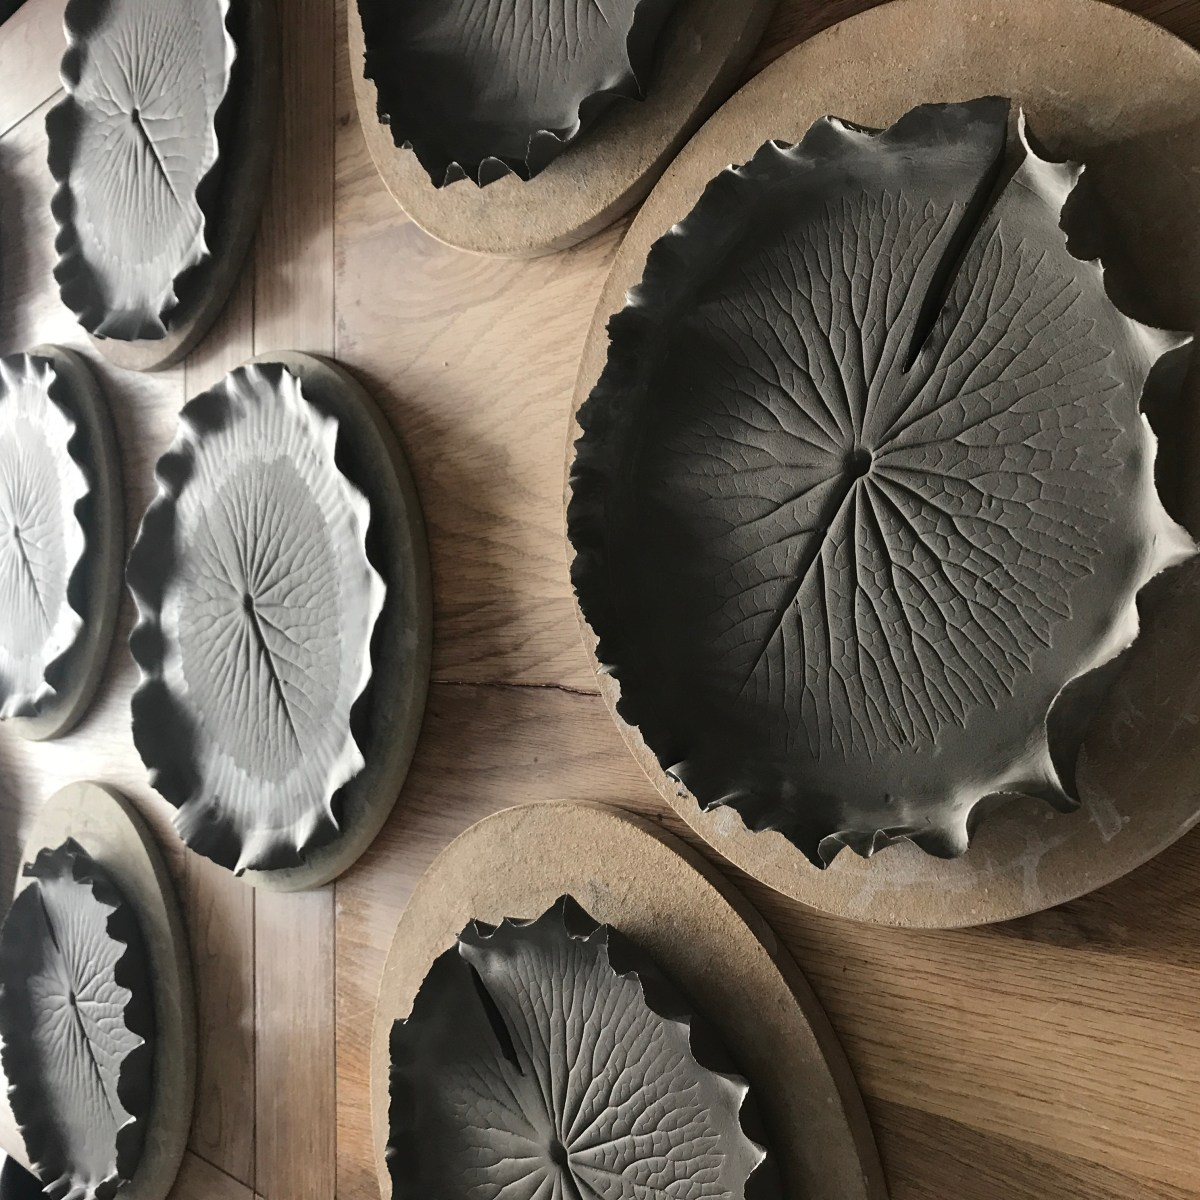 Pond Lily Leaf Dessert Dishes by Sonya Ceramic Art 'In The Making'